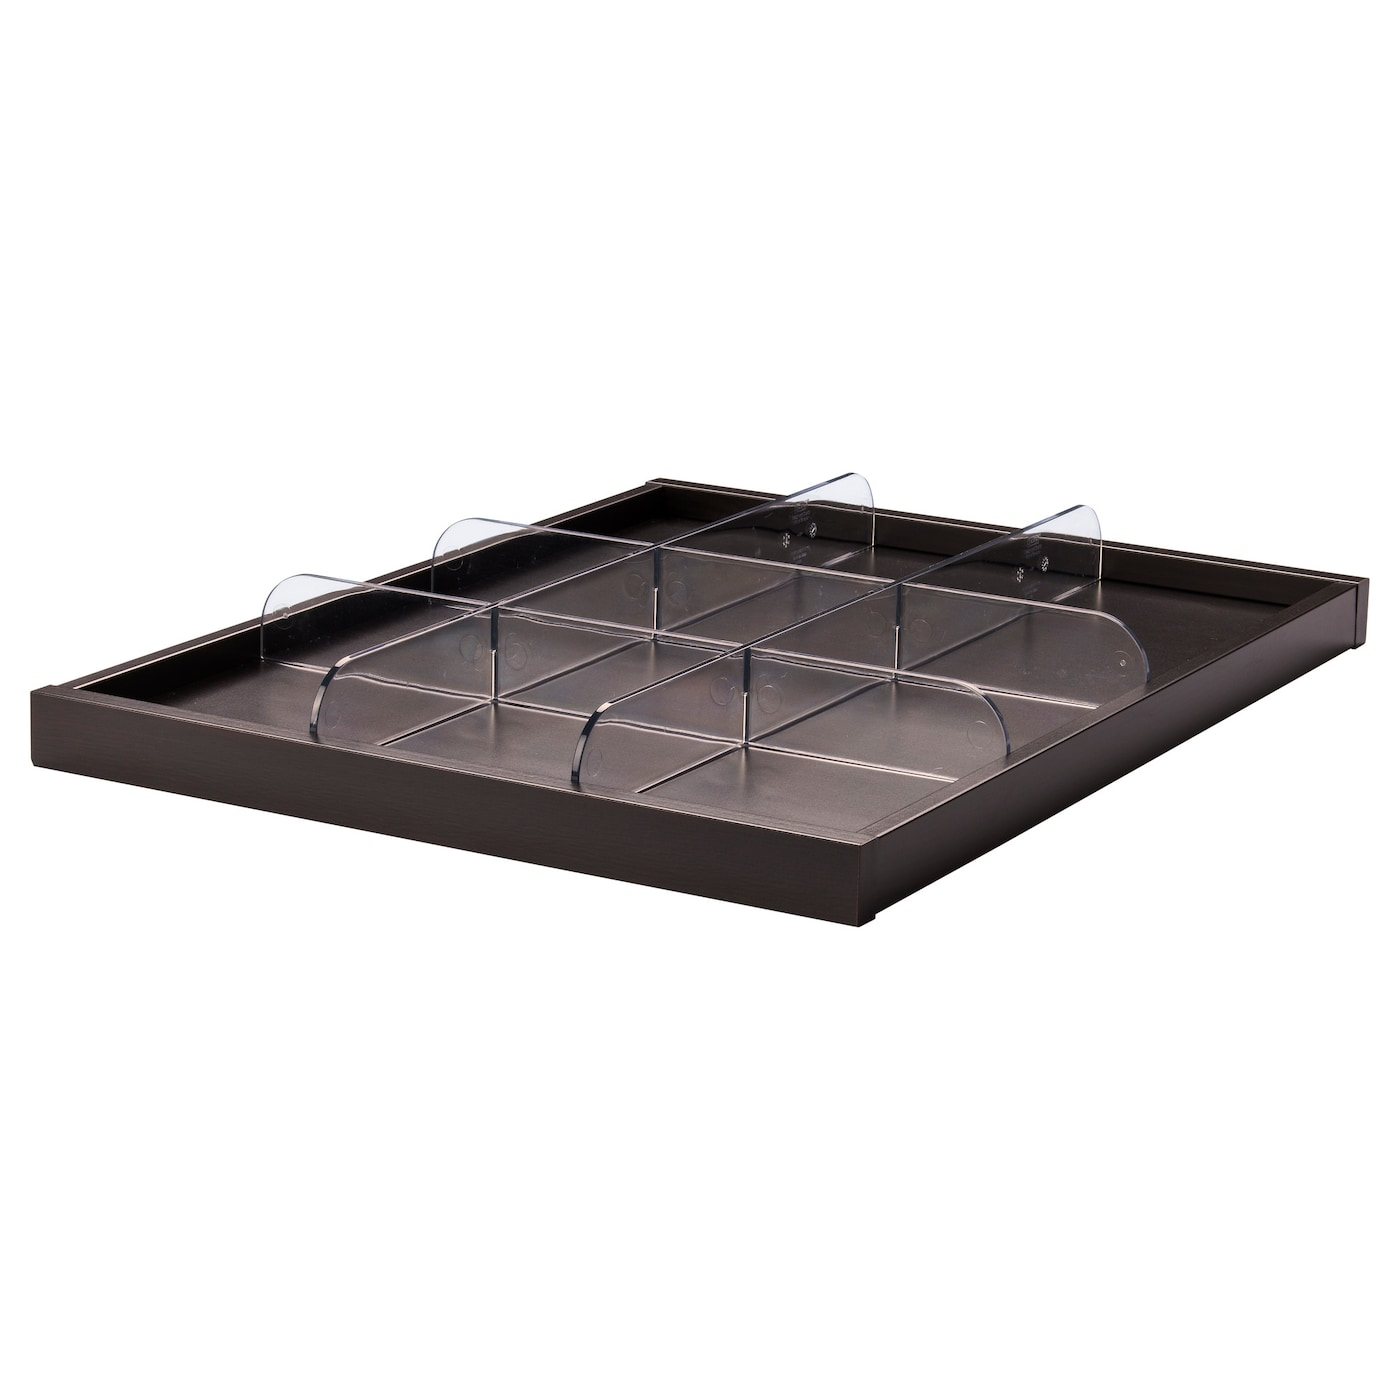 komplement pull out tray with divider black brown transparent 50x58 cm ikea. Black Bedroom Furniture Sets. Home Design Ideas